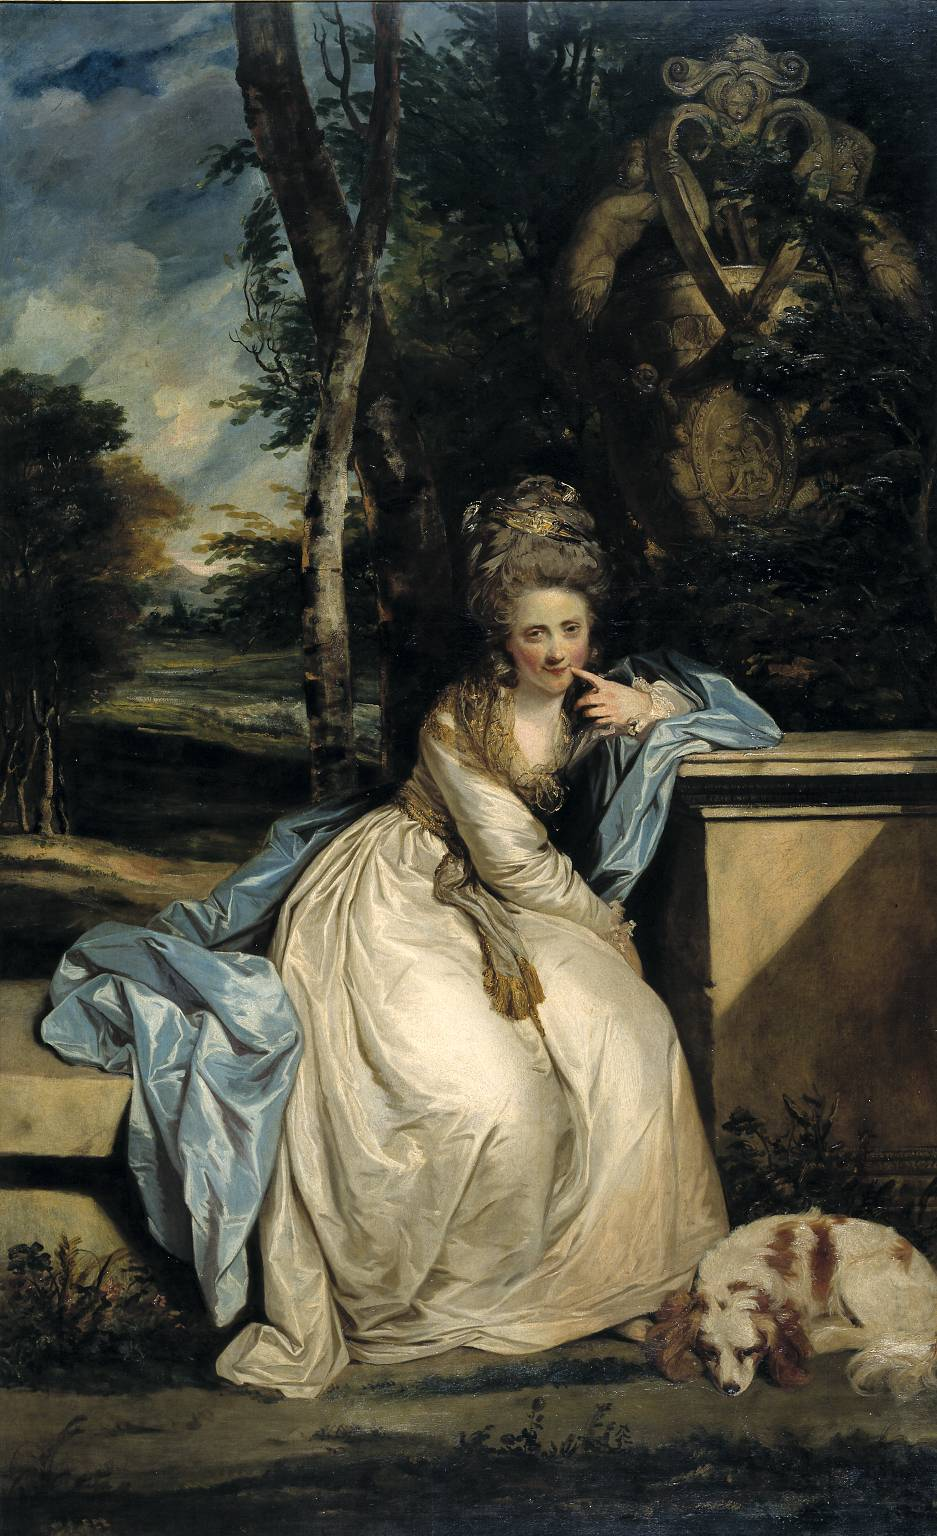 Sir Joshua Reynolds, 'The Hon. Miss Monckton' 1777-8